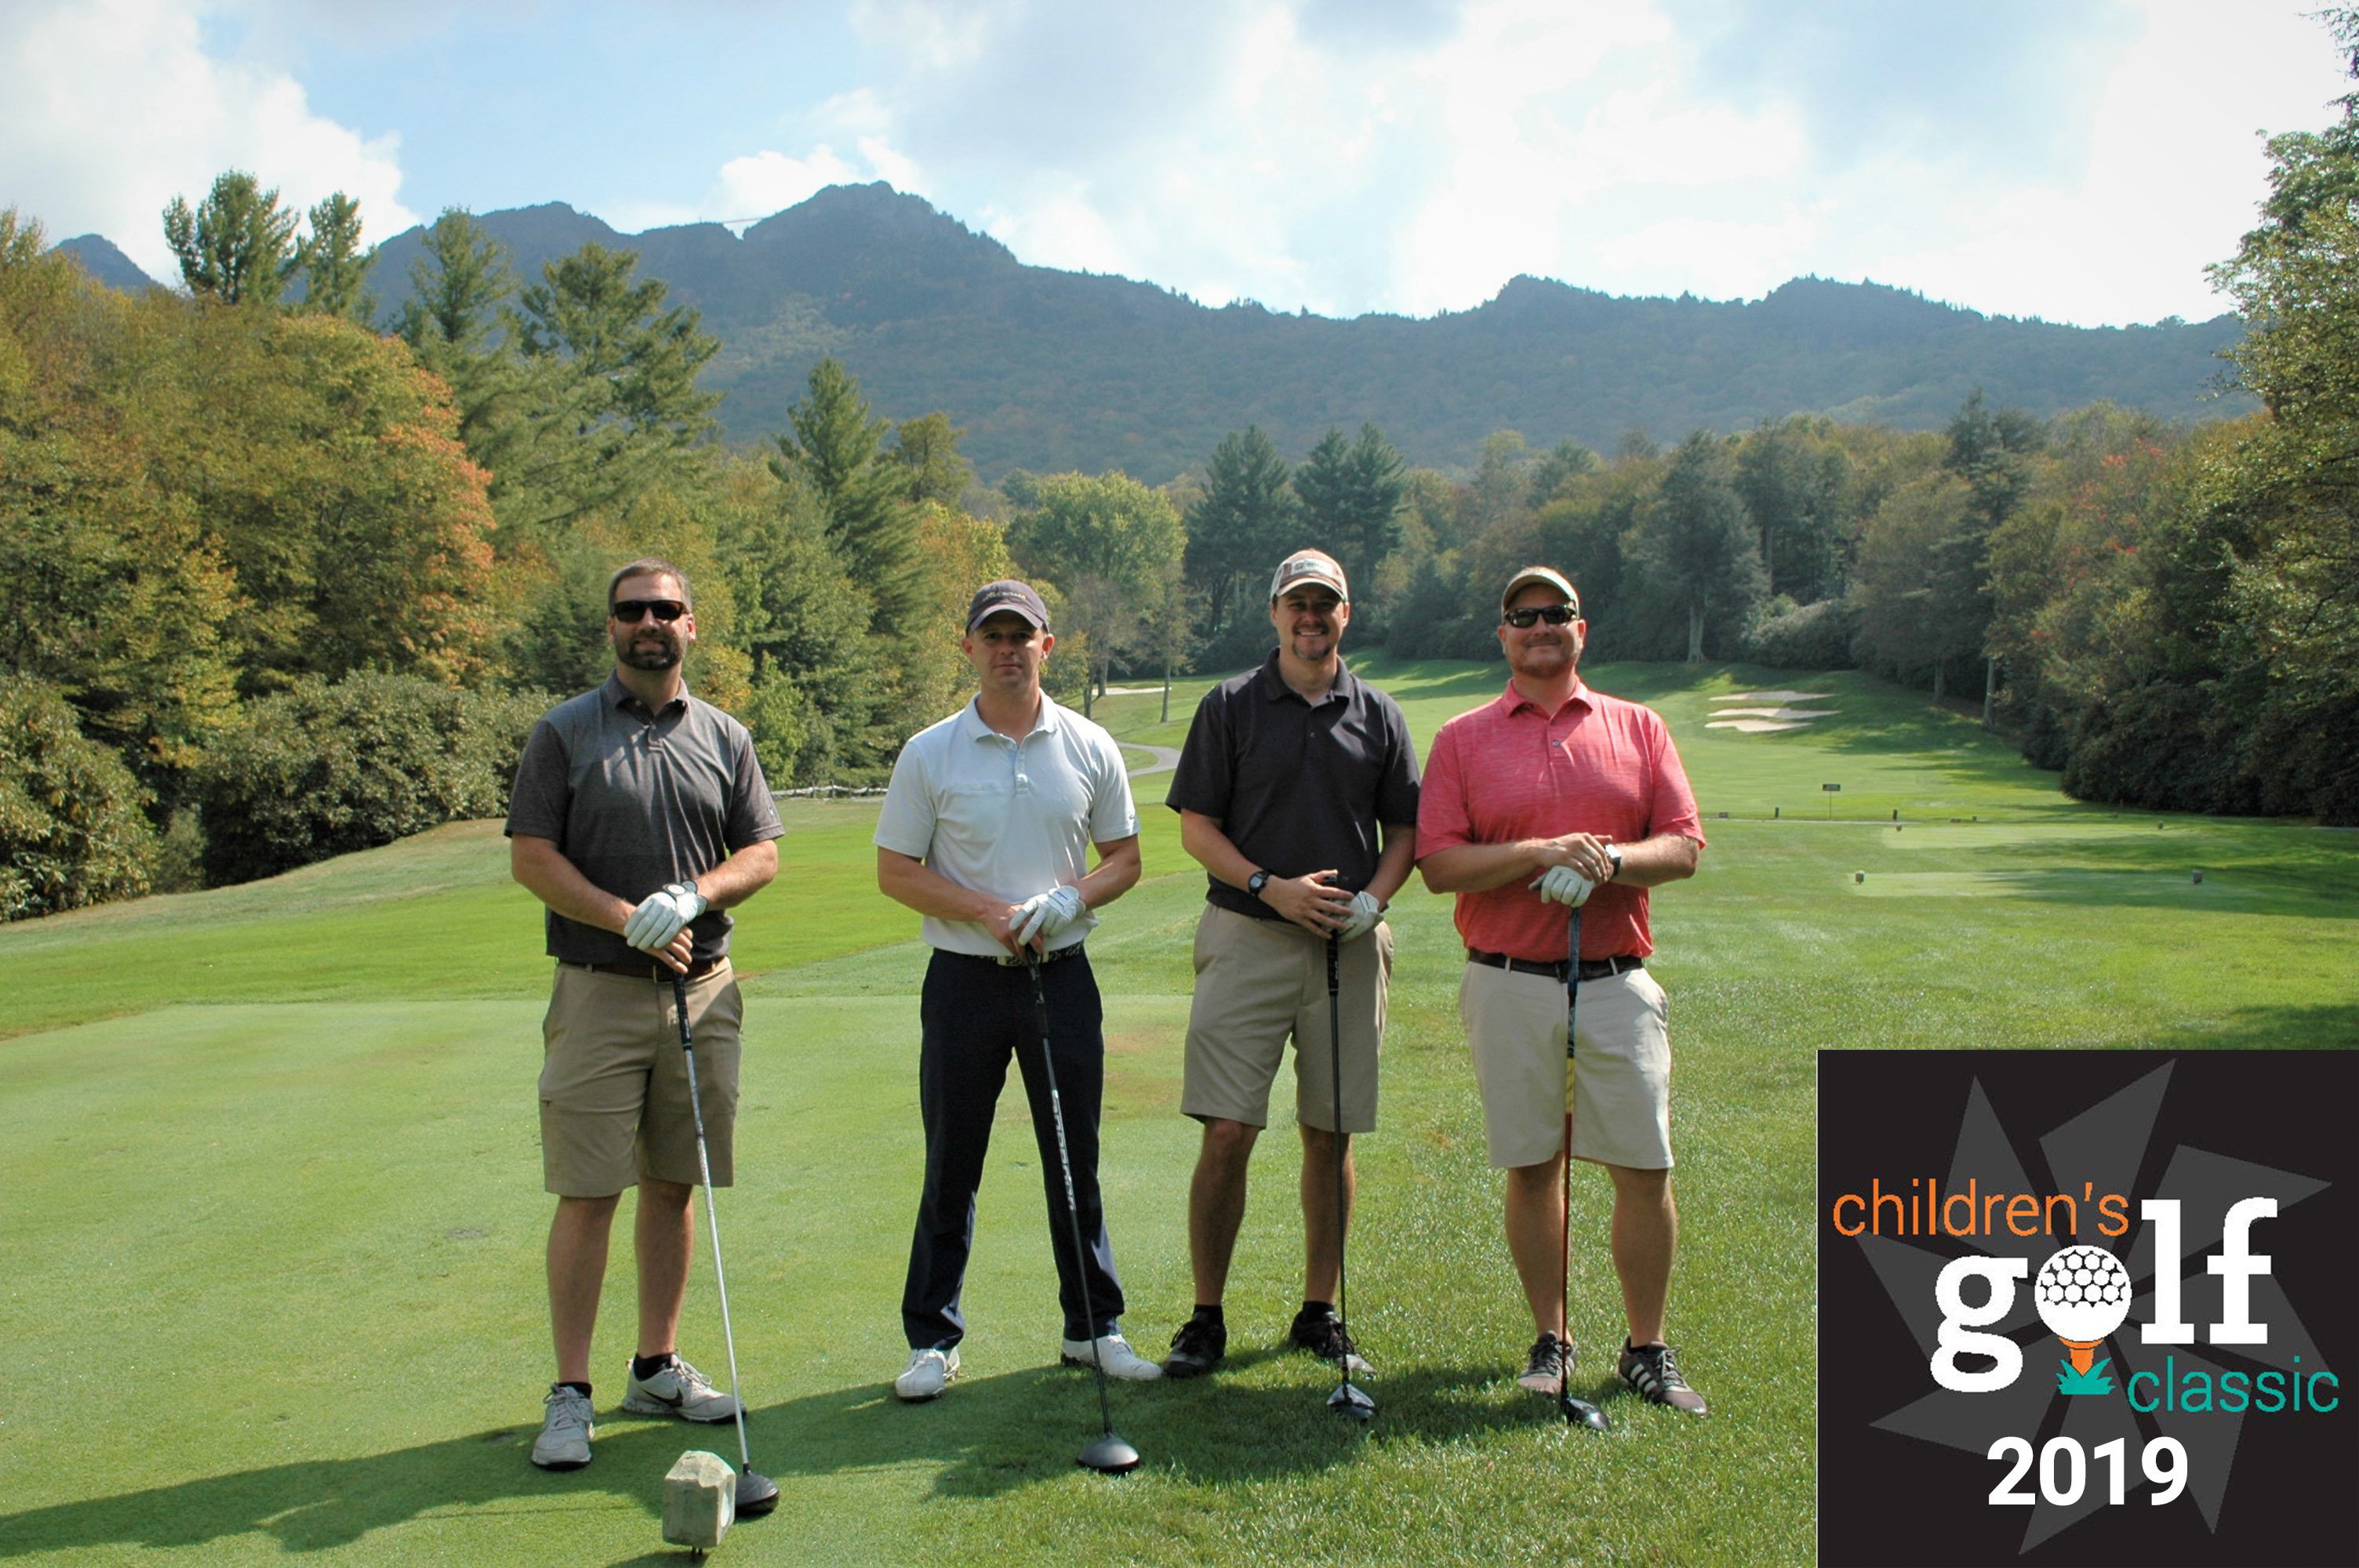 Children's Golf Classic gallery image #5